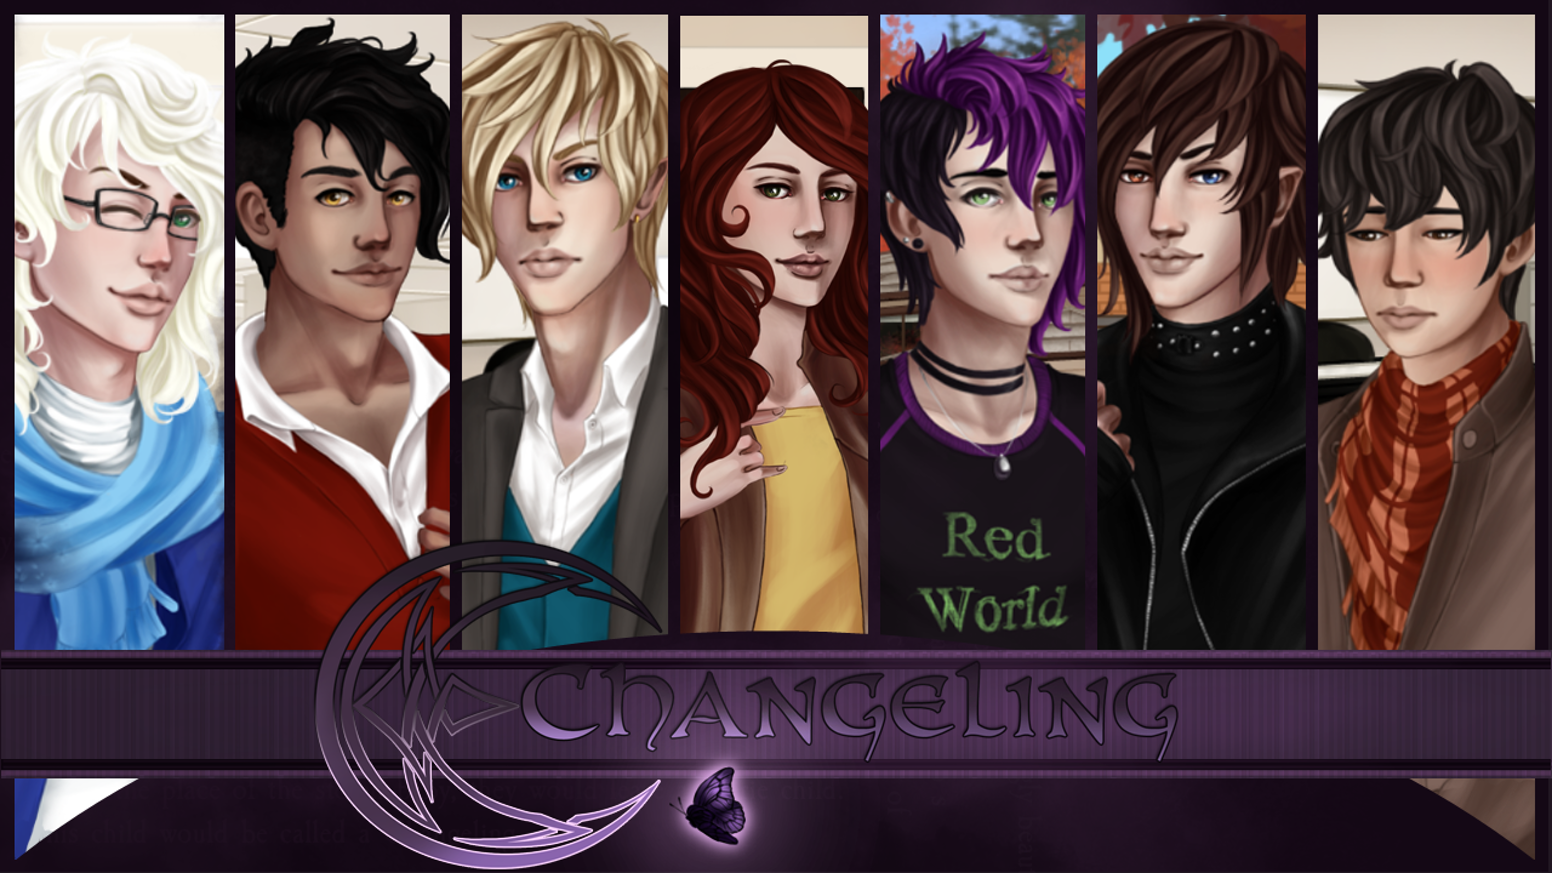 A visual novel that celebrates the absurdity of love and takes a humorous approach to tropes found in the fantasy & romance genres.